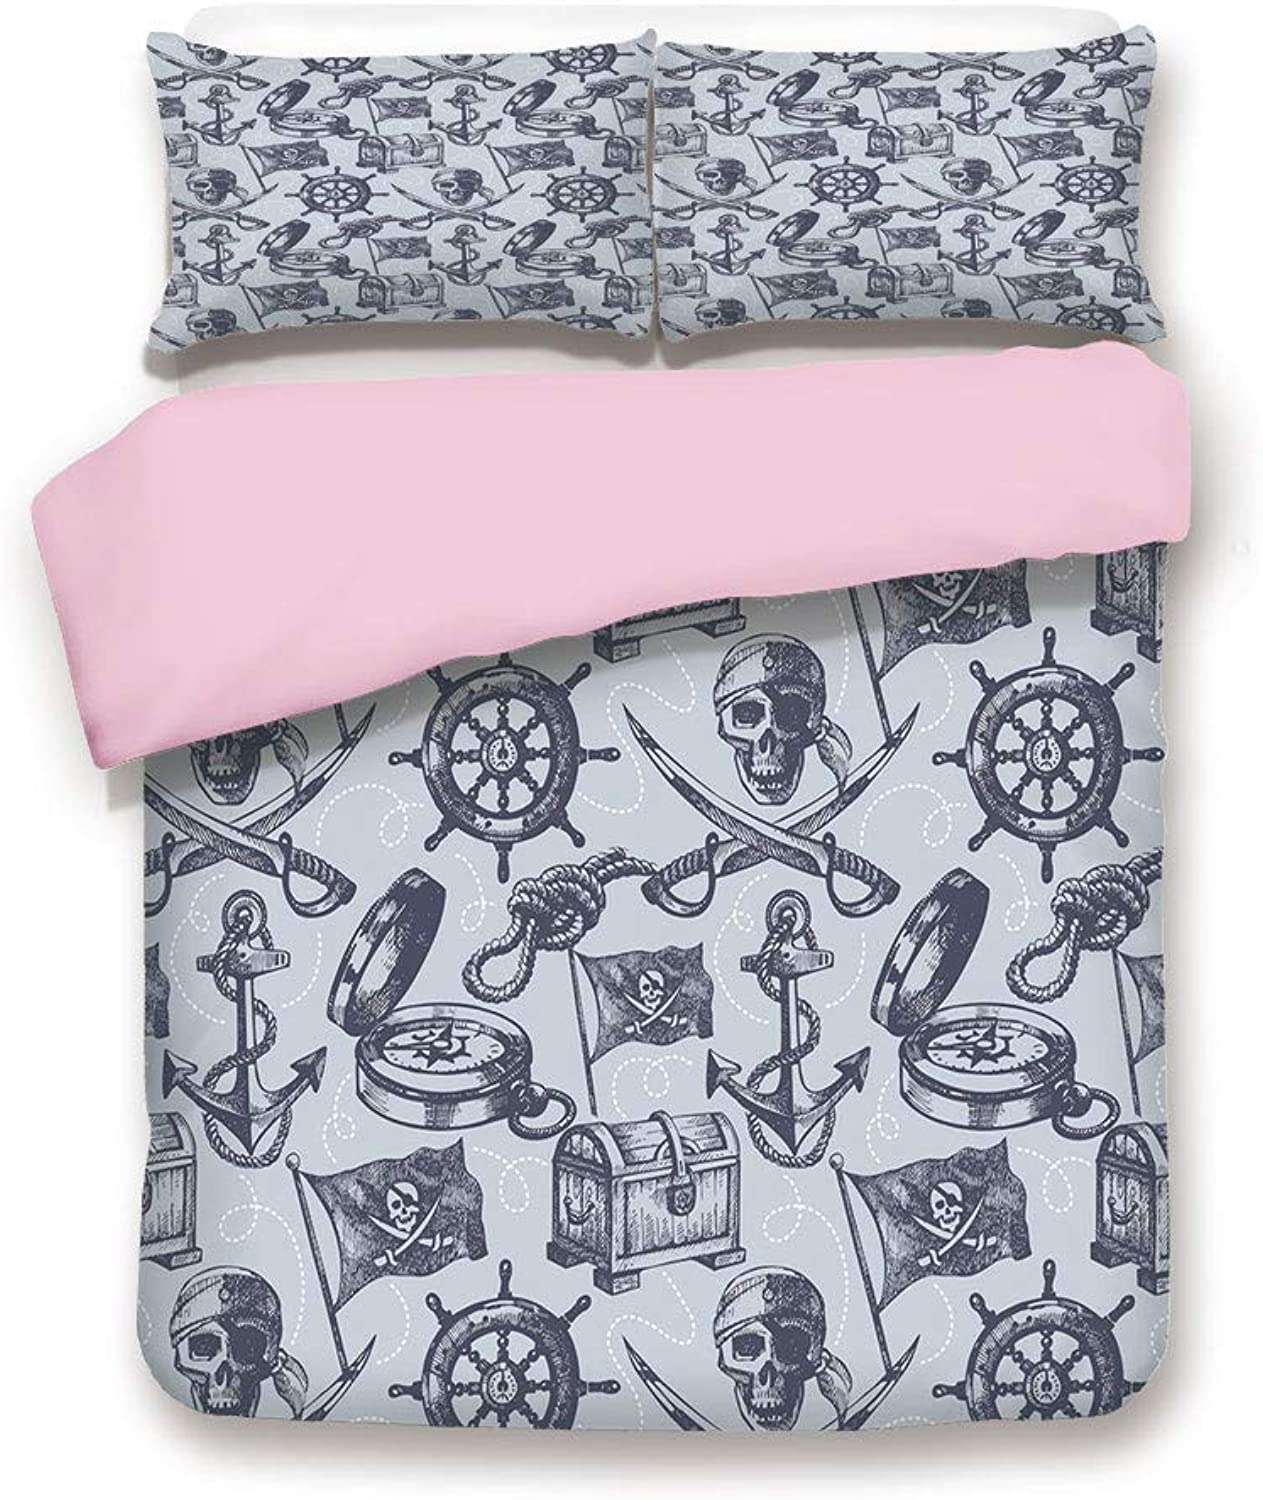 Pink Duvet Cover Set,Queen Size,Nautical Symbols Anchor Steering Wheel Pirate Skull Crossed Swords Pattern Decorative,Decorative 3 Piece Bedding Set with 2 Pillow Sham,Best Gift For Girls Women,Grey B